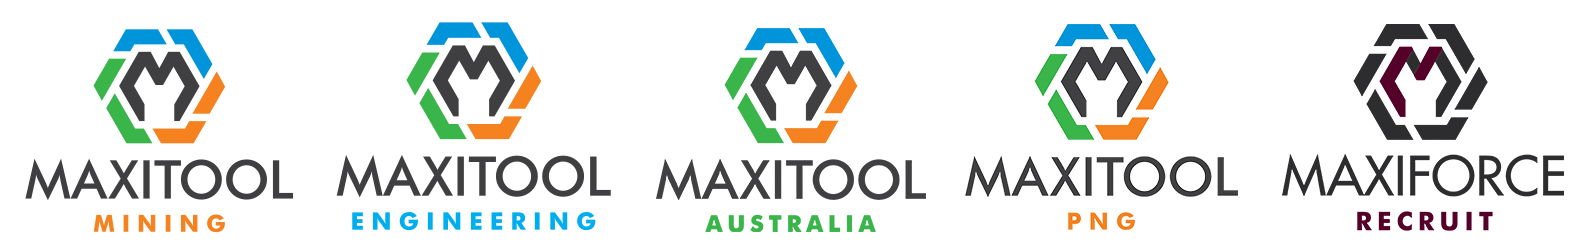 Maxitool Group - Group of 5 Logos Rev4